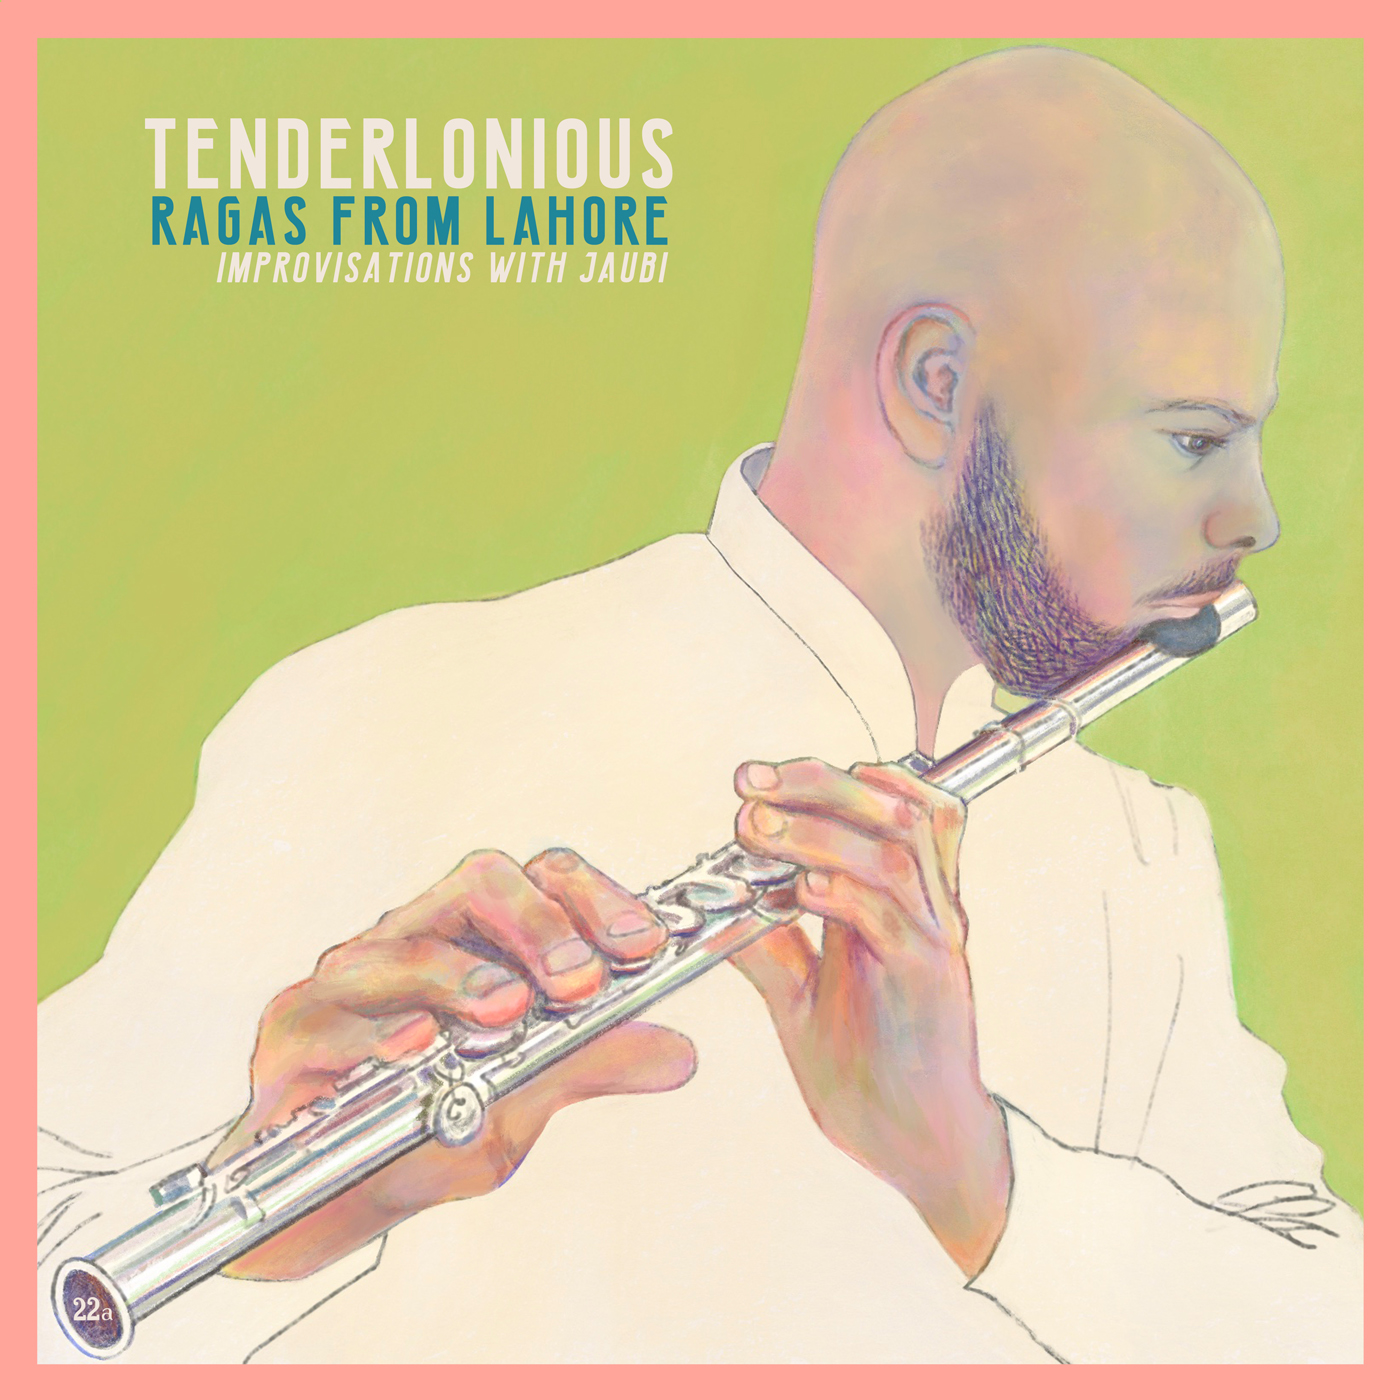 New 22a: Tenderlonious - Ragas from Lahore - Improvisations with Jaubi.